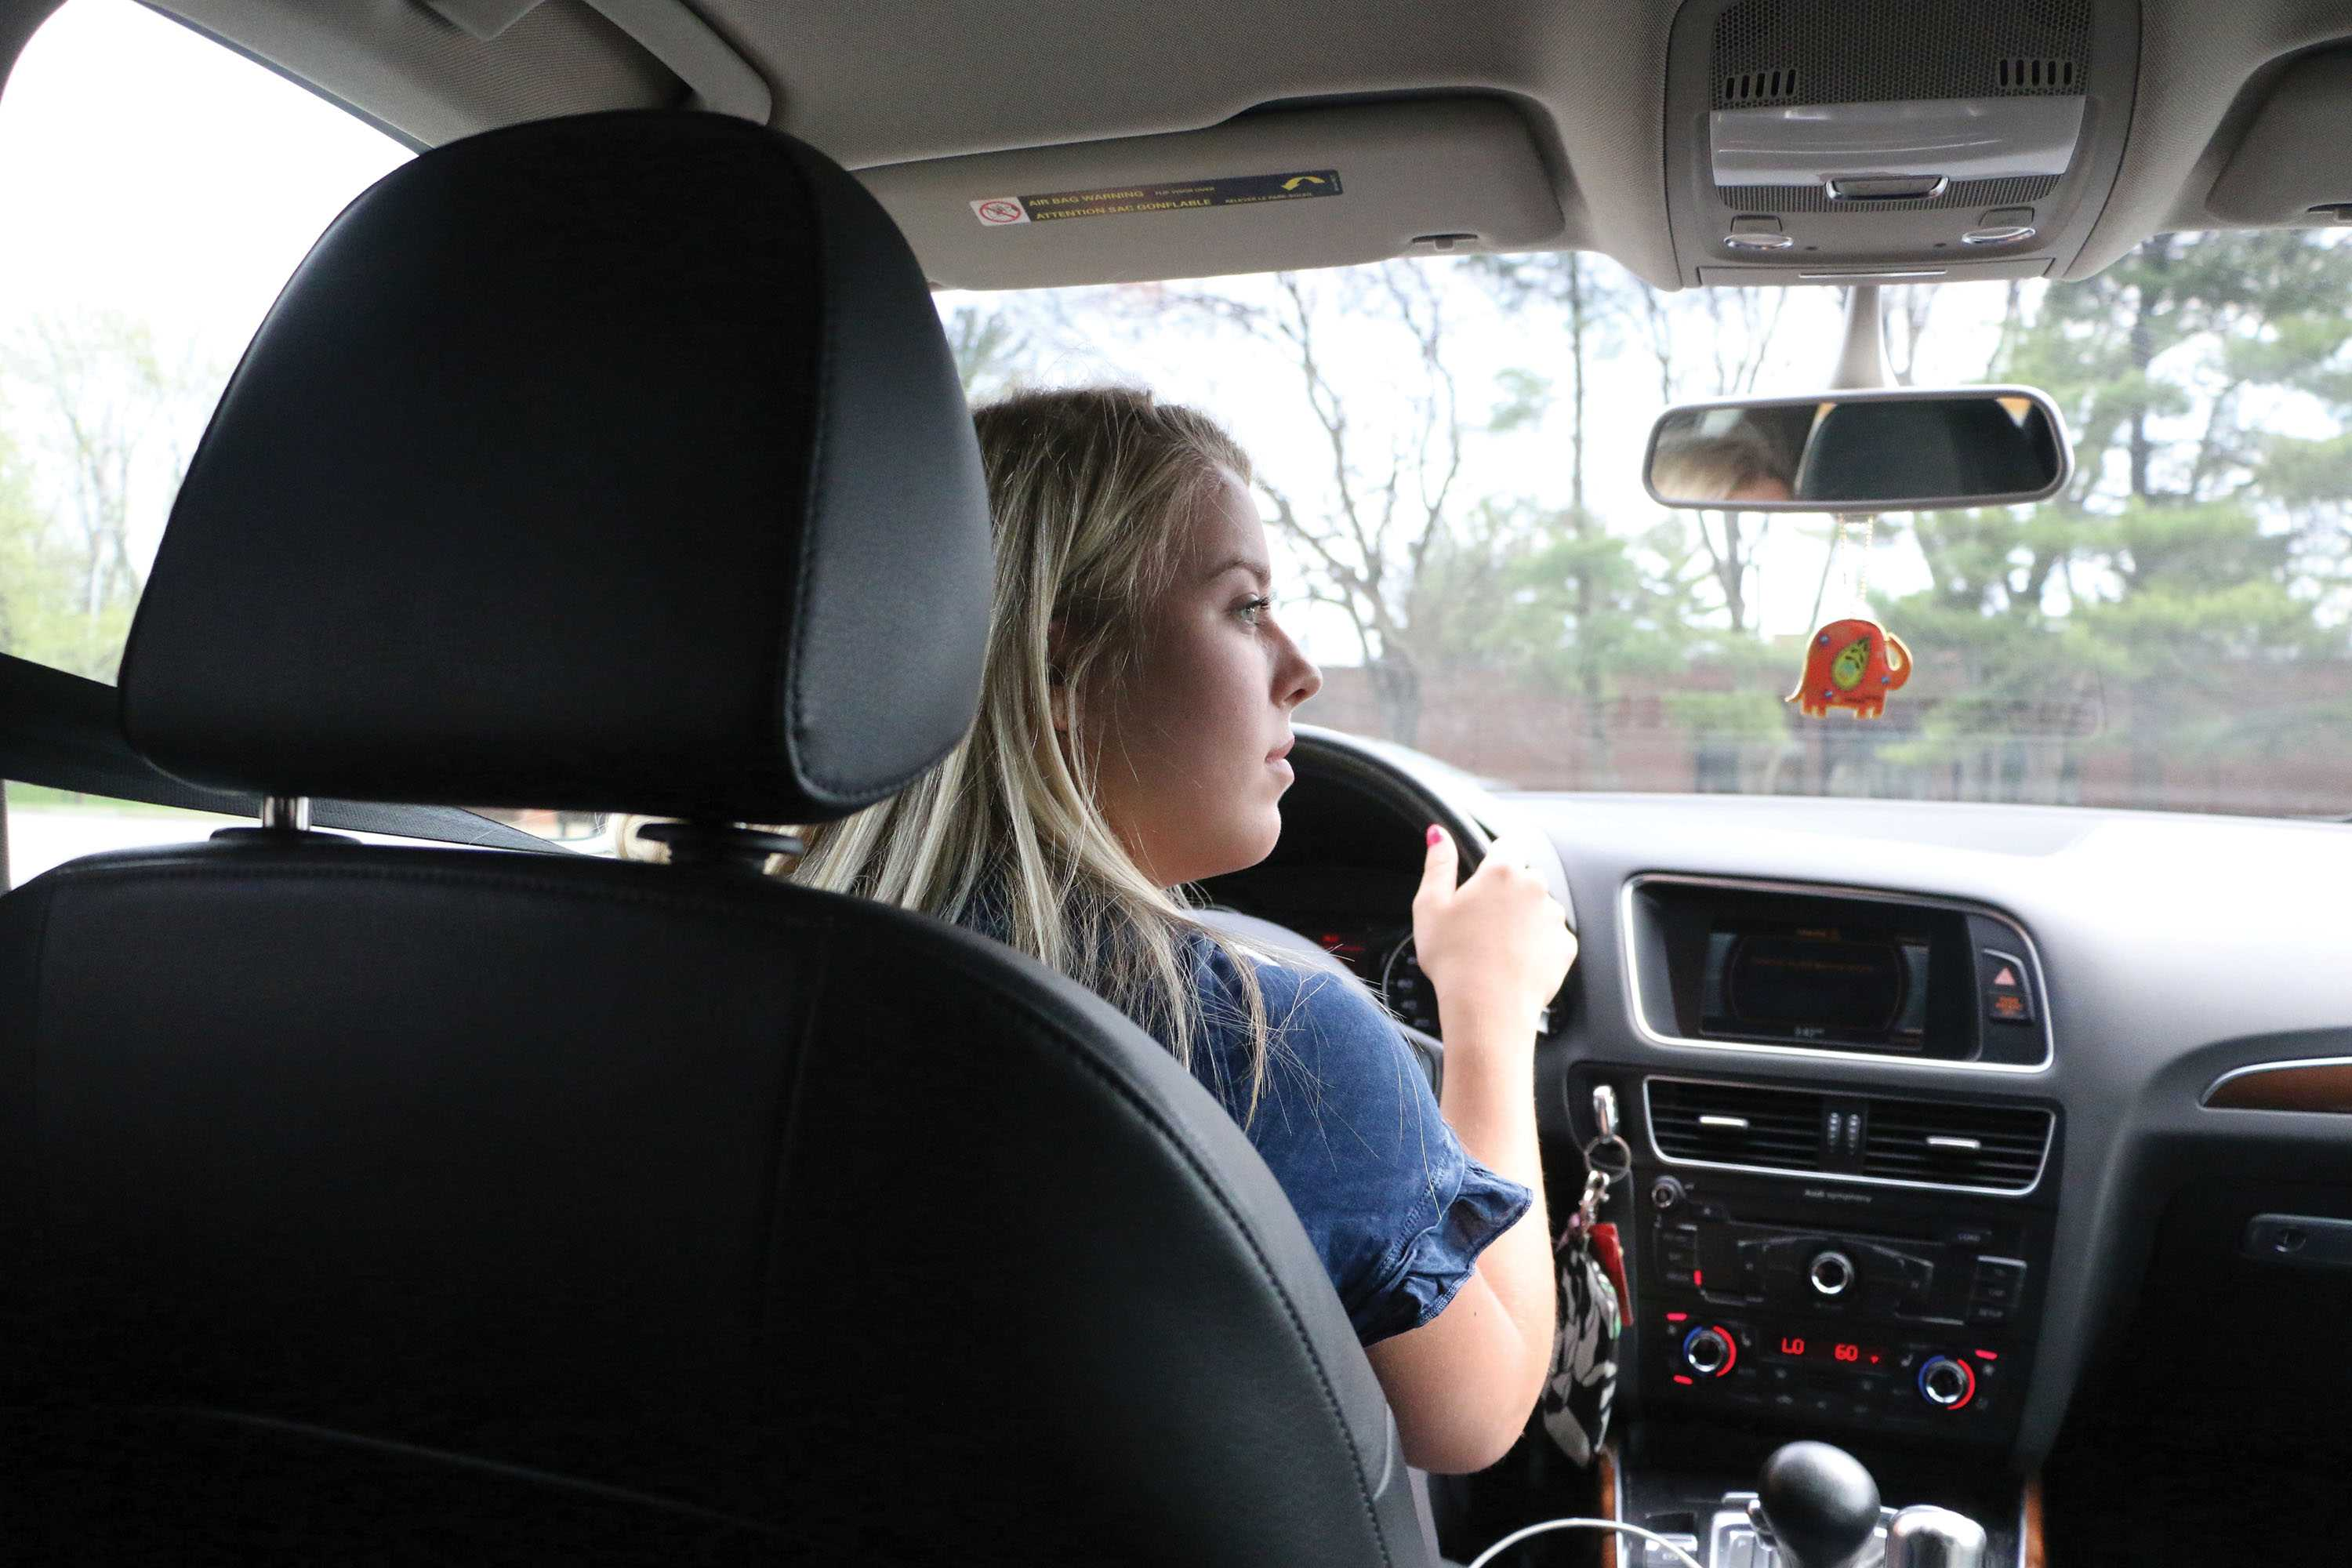 CAREFUL CONDUCTING: Sophomore Lucy Salter waits to make a left turn onto Main Street. Salter was in an accident in a roundabout last January.